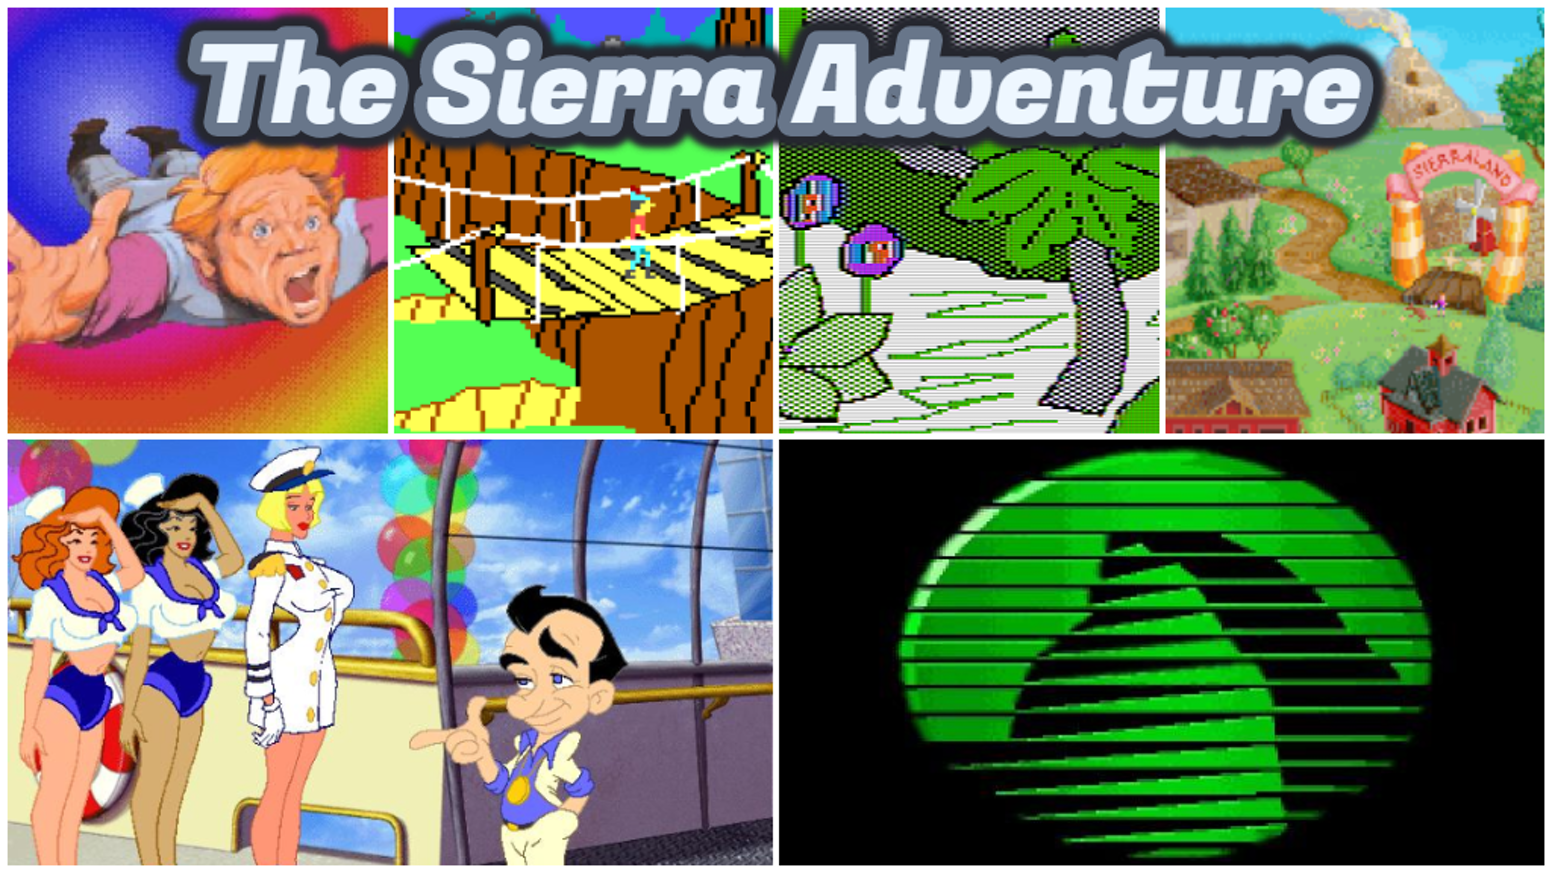 """The Sierra Adventure"" is a non-fiction book about the early giant of computer gaming, Sierra On-Line."